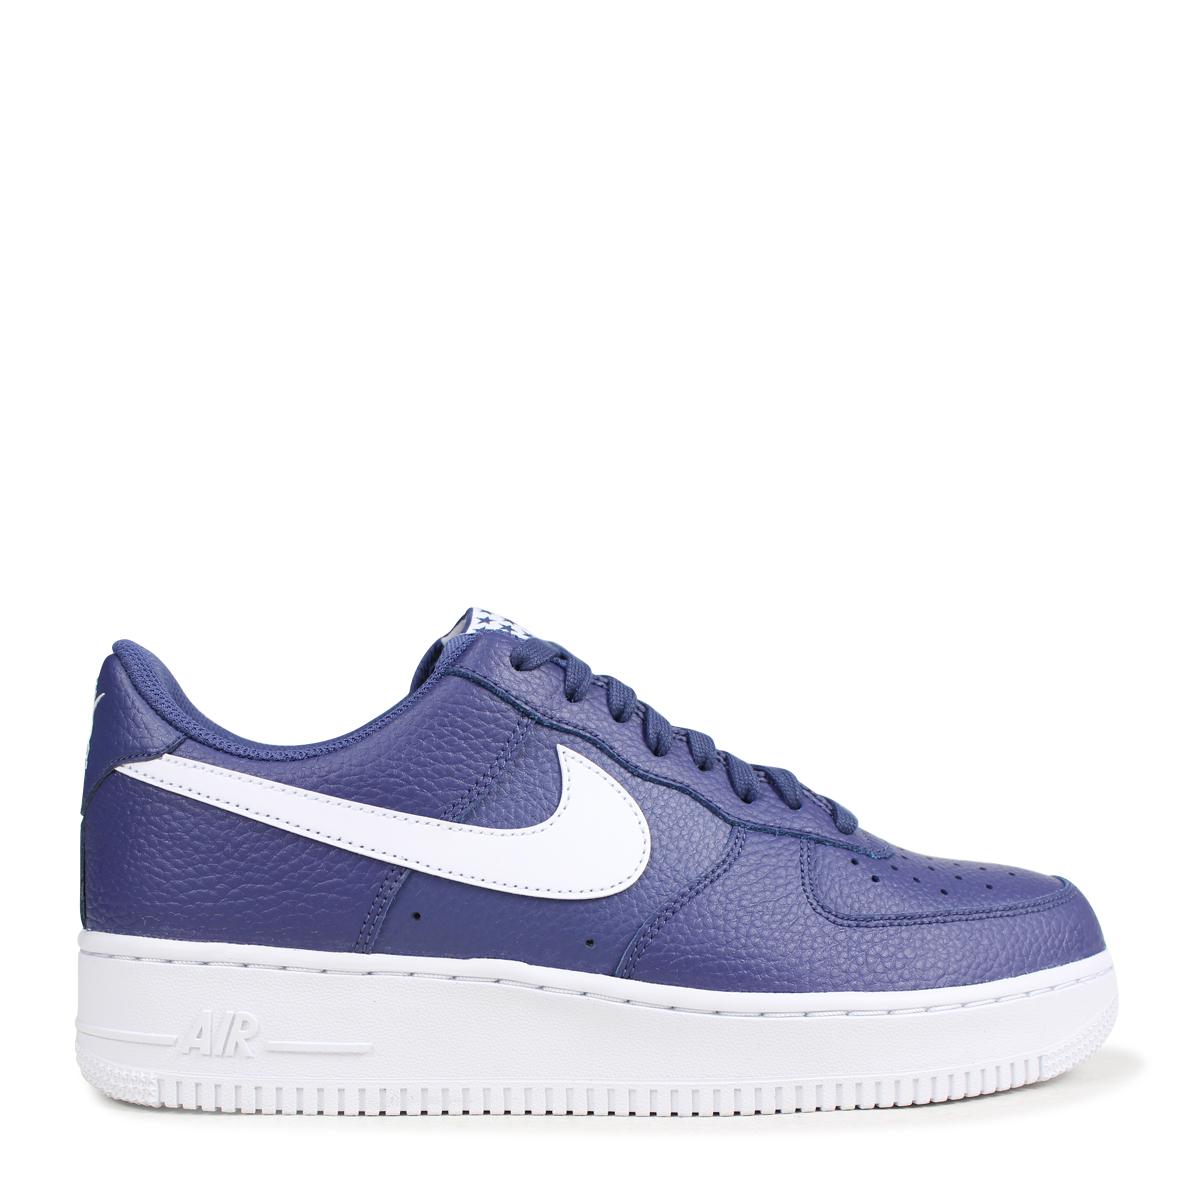 Nike NIKE air force 1 sneakers men AIR FORCE 1 07 AA4083 401 blue